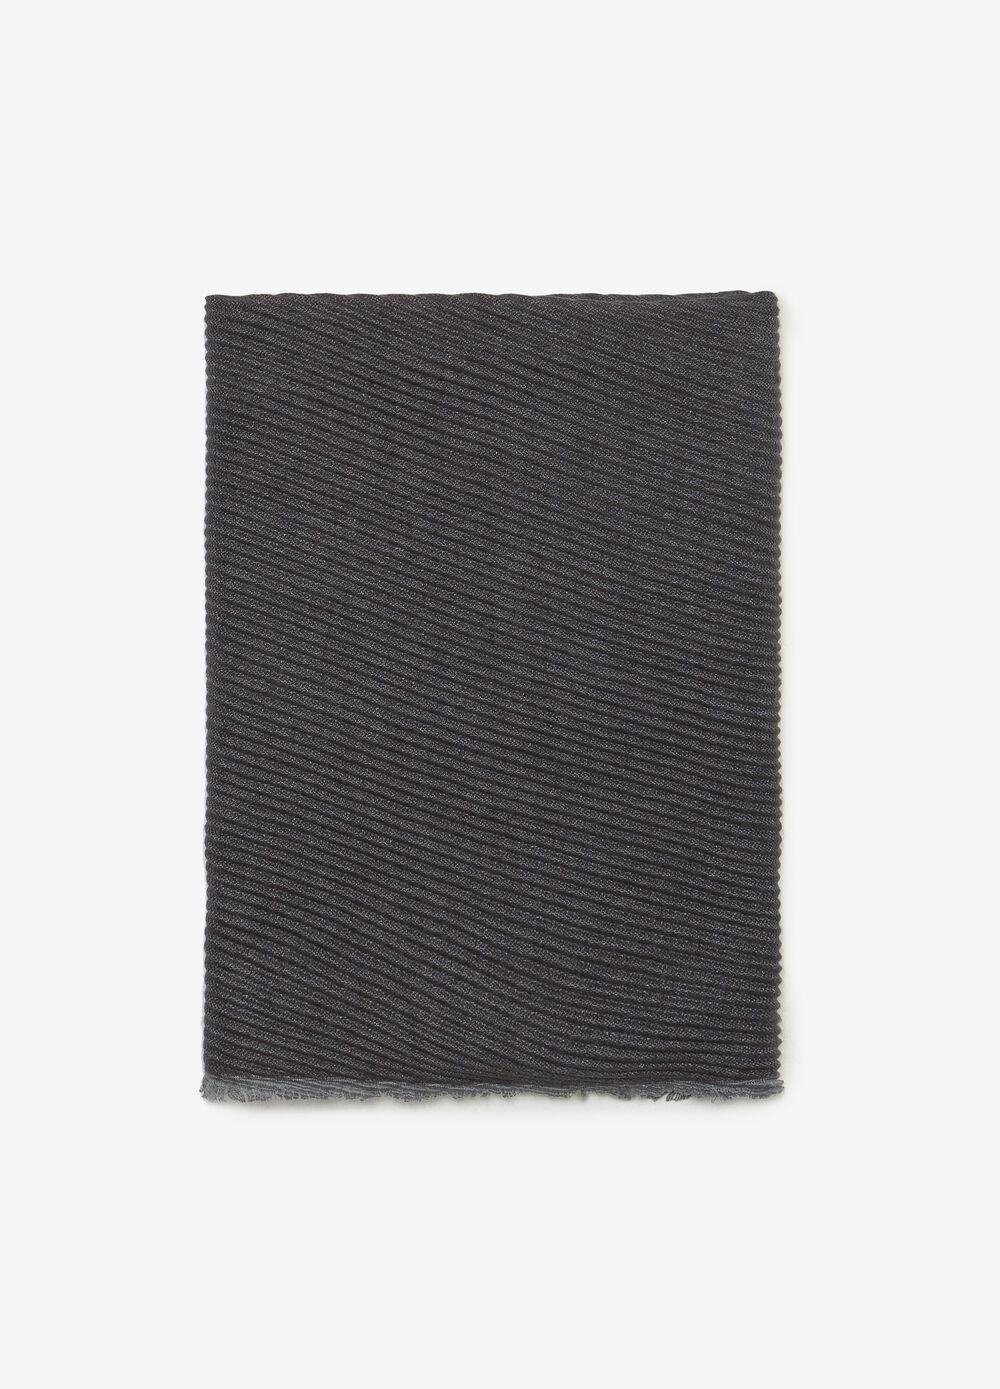 Two-tone pleated scarf with striped weave